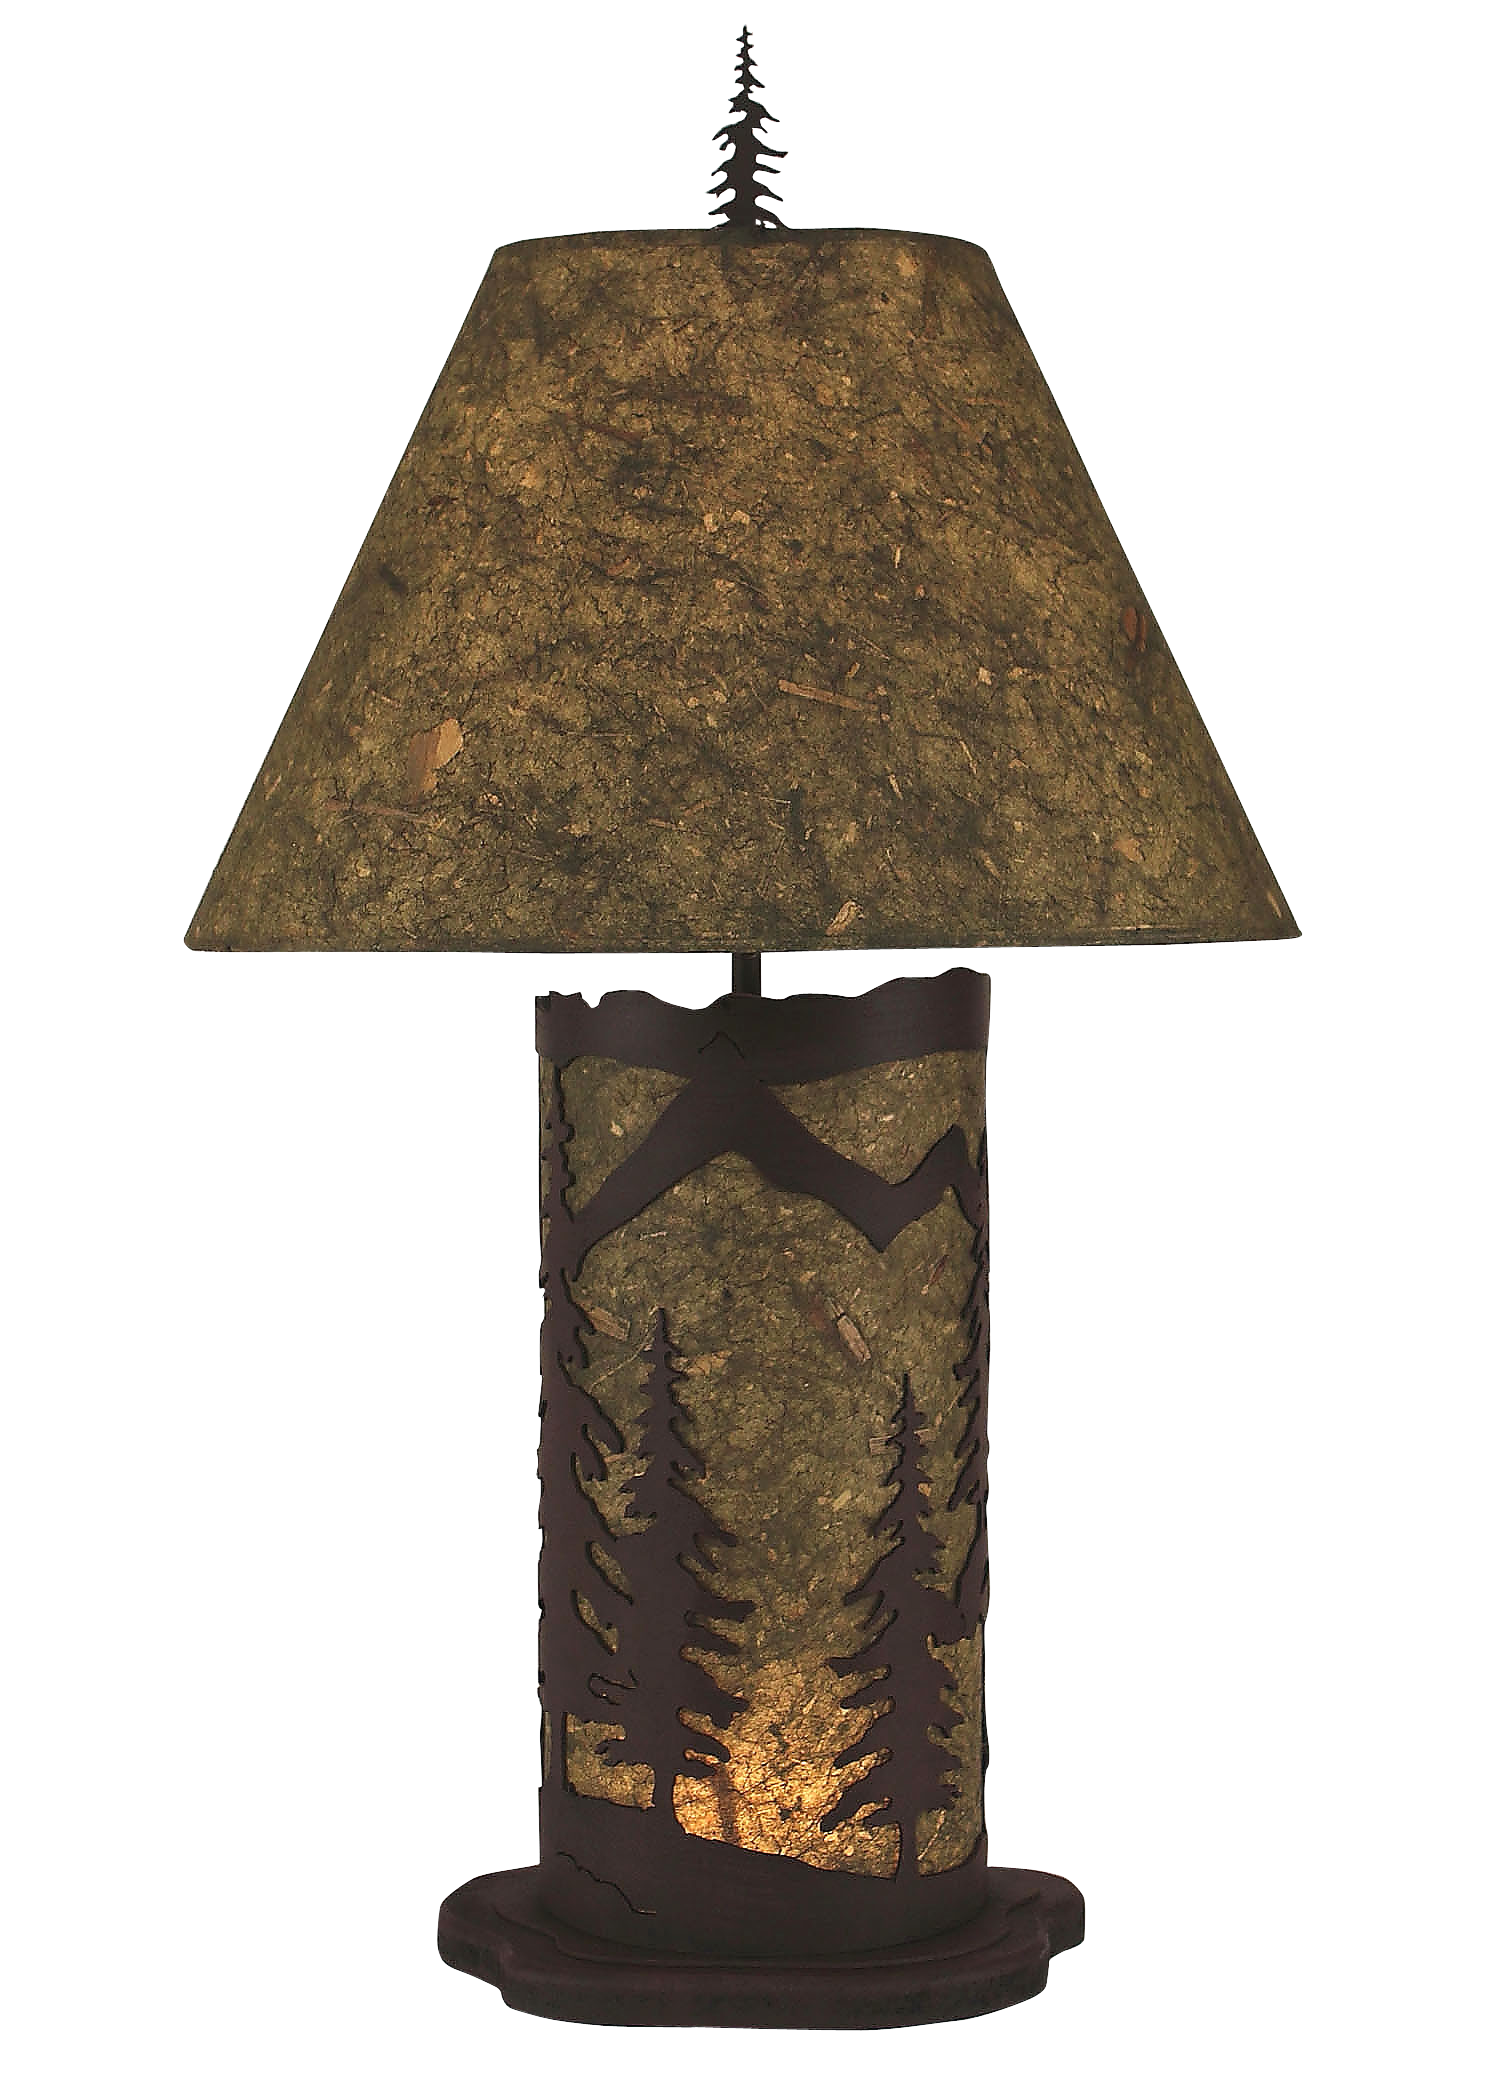 Forest Small Mountain Scene Table Lamp w/ Night Light - Coast Lamp Shop